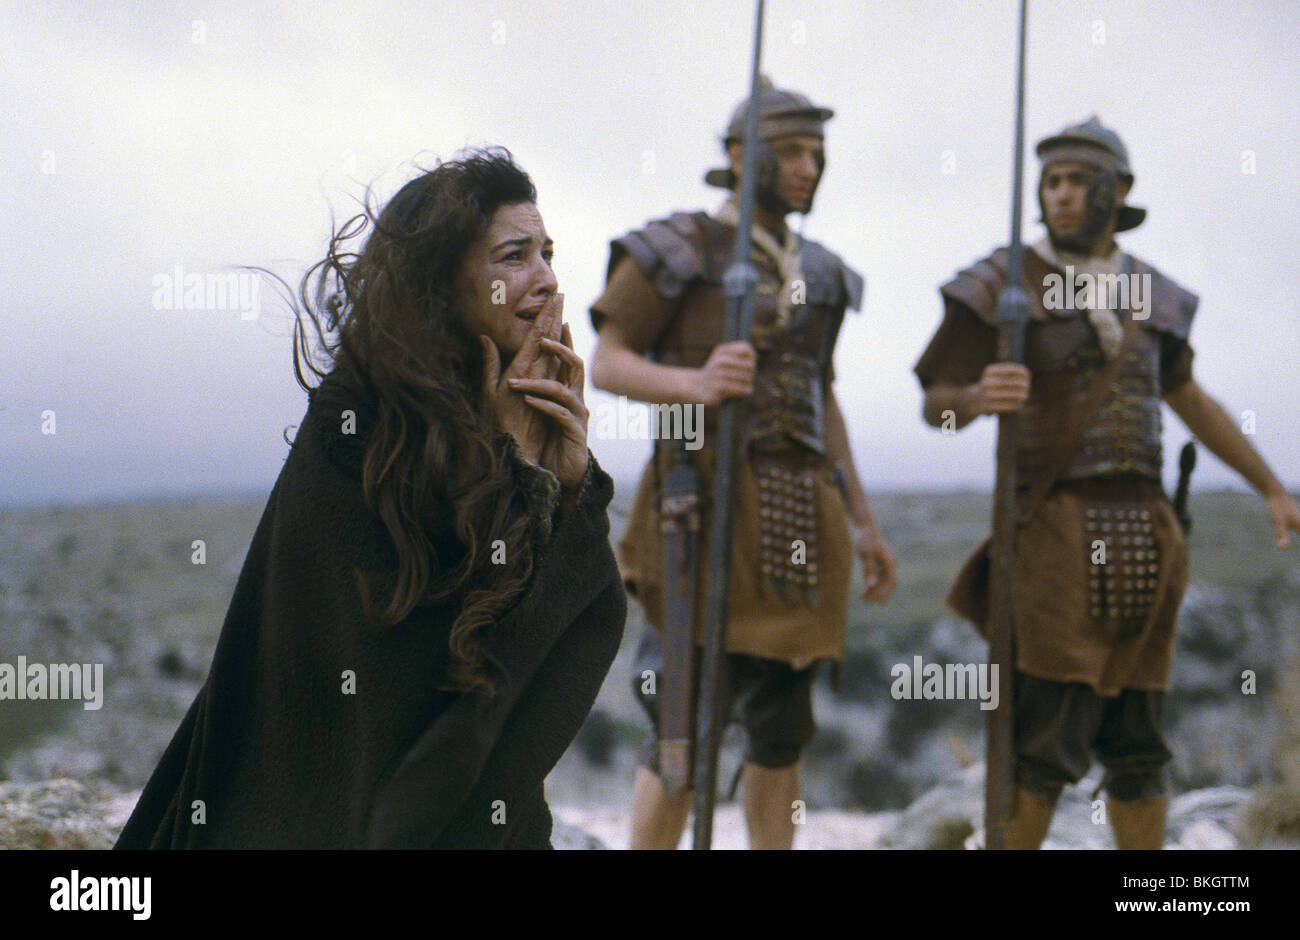 THE PASSION OF THE CHRIST (2004) MONICA BELLUCCI PASC 001-12 - Stock Image